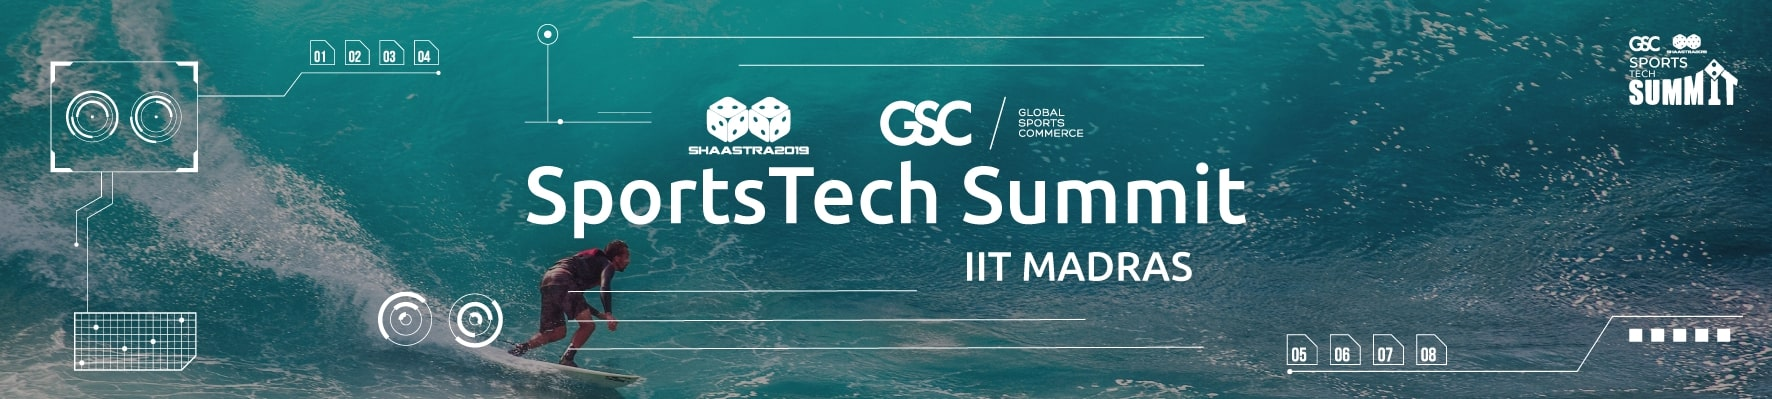 SportsTech Summit 2019